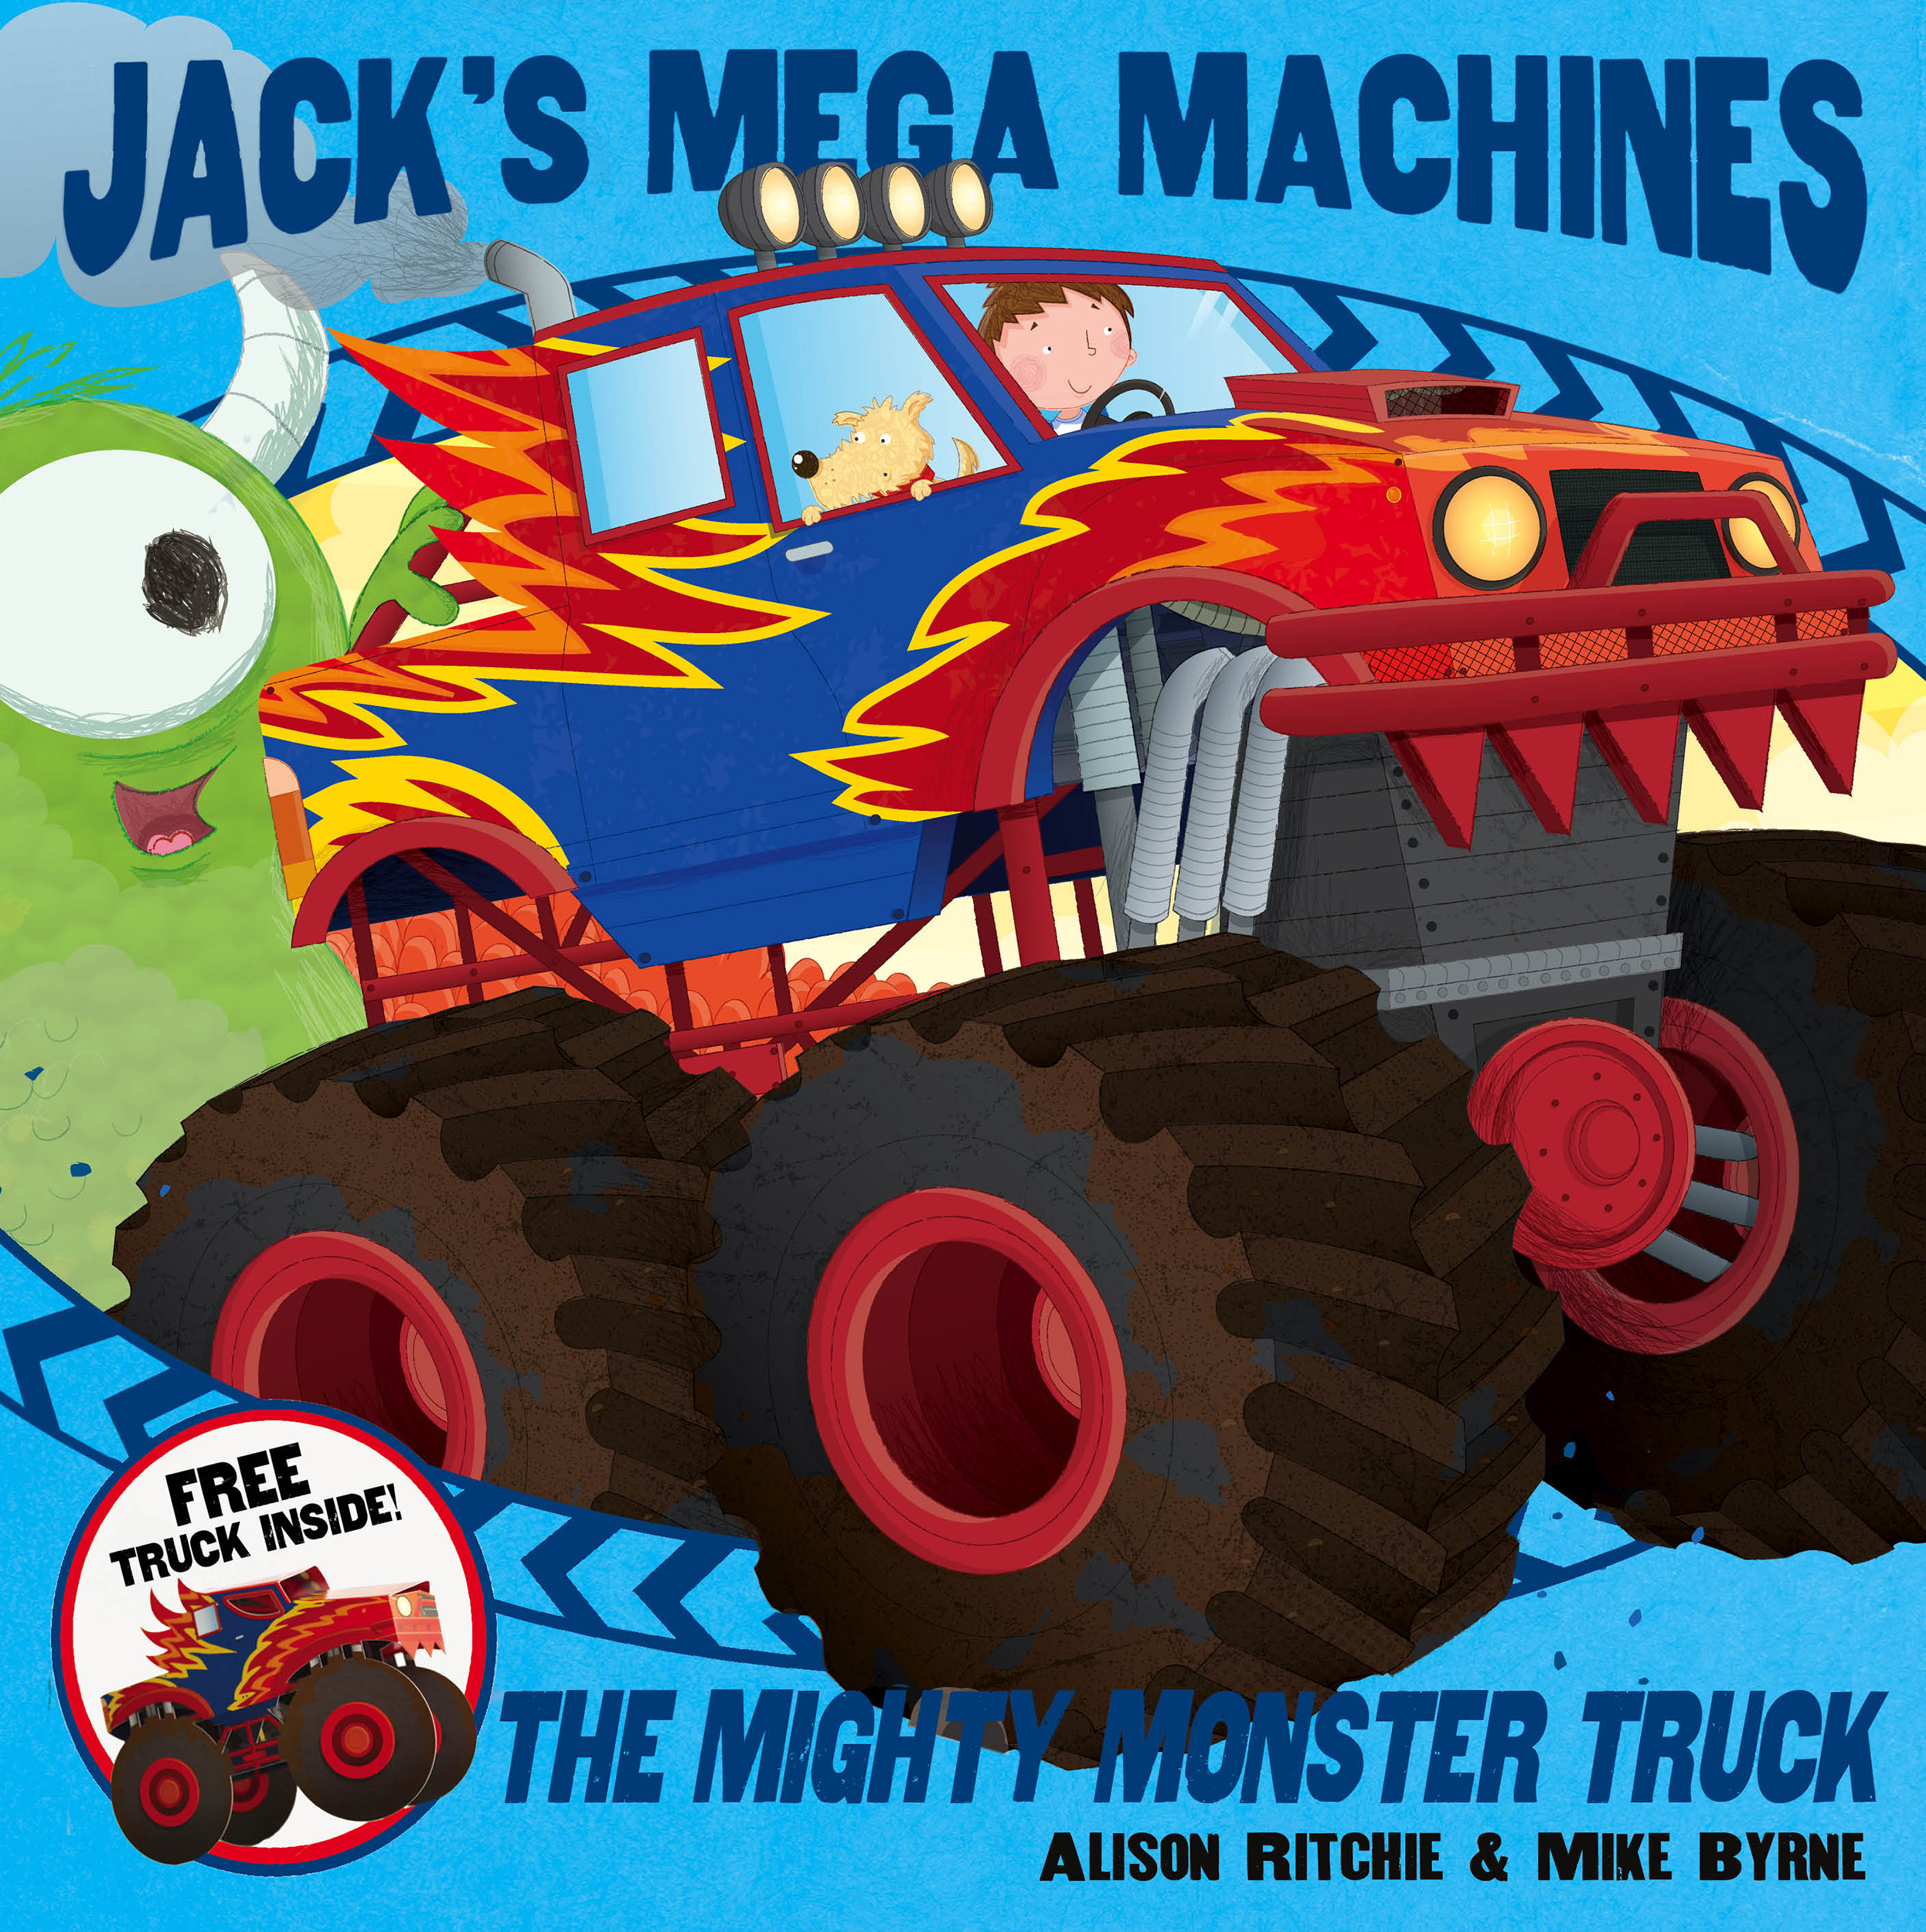 Jacks mega machines mighty monster truck 9780857075703 hr